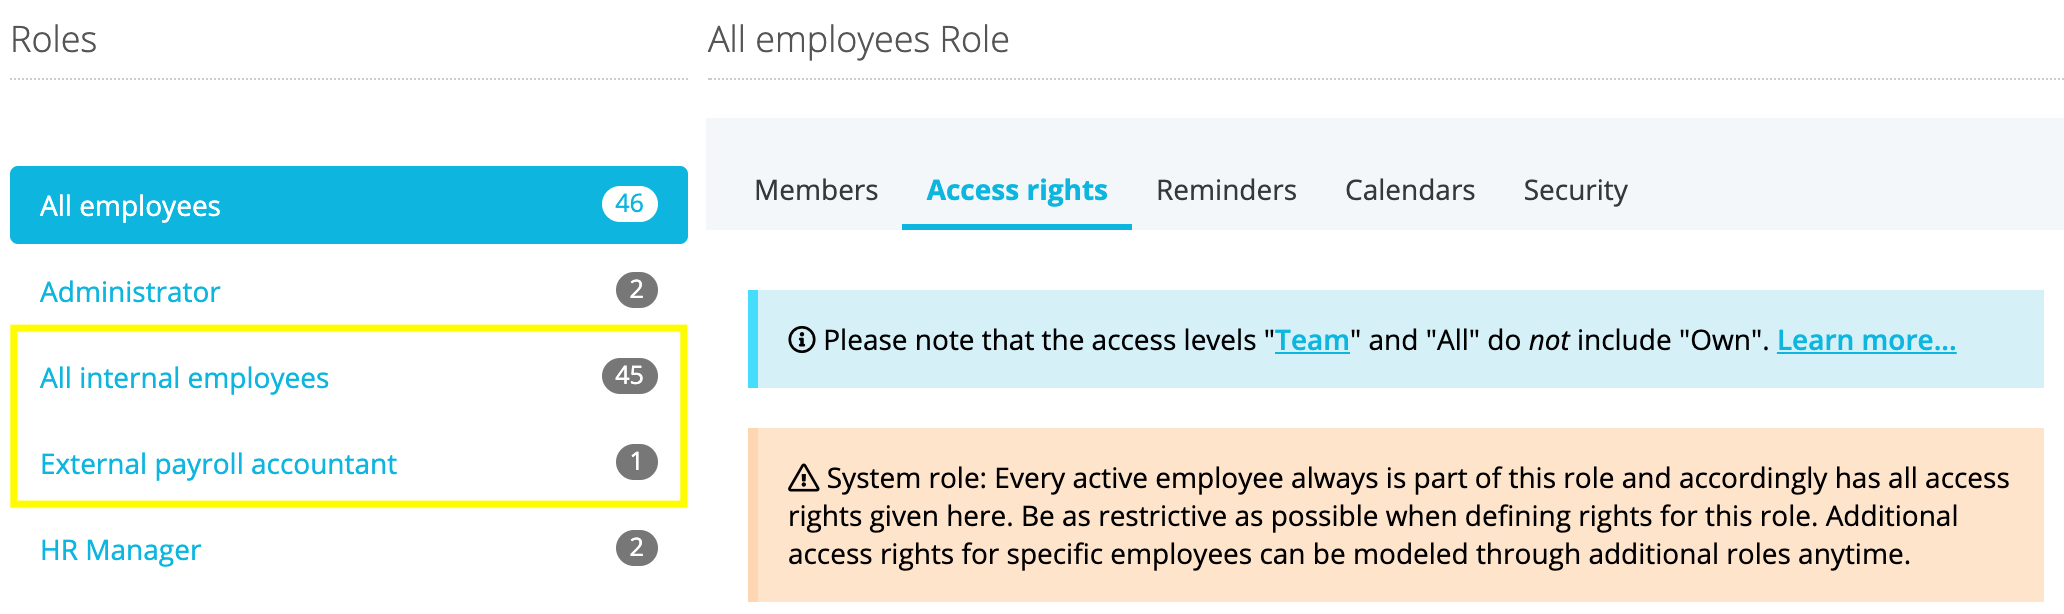 Employeeroles-externalpayroll-accessrights-allemployees_en-us.png